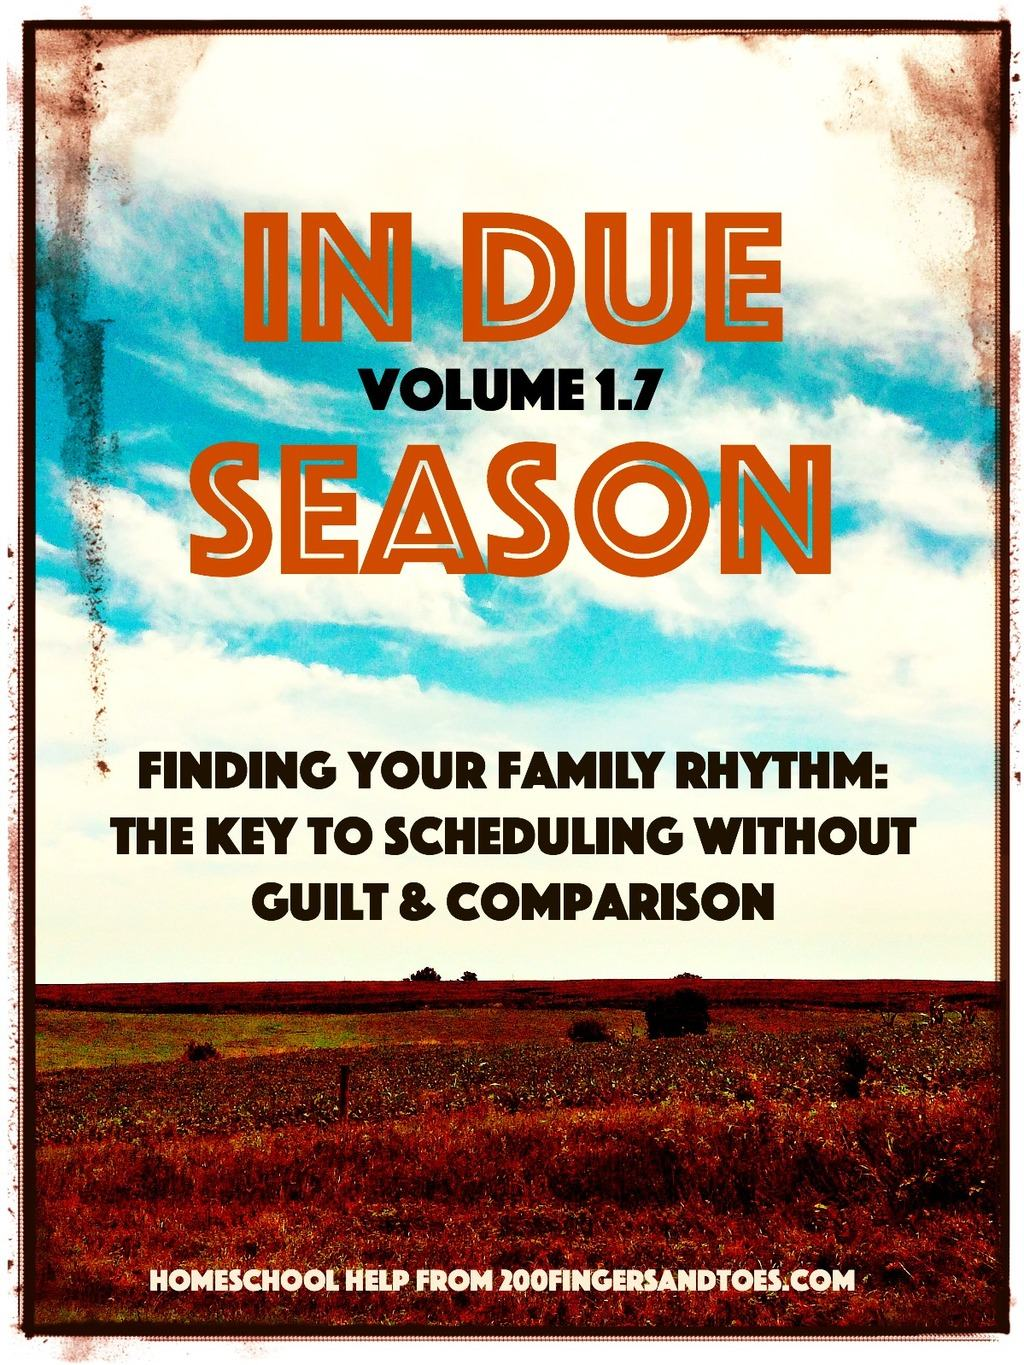 Find your family's personal rhythms and schedule without comparison or guilt | In Due Season Volume 1.7